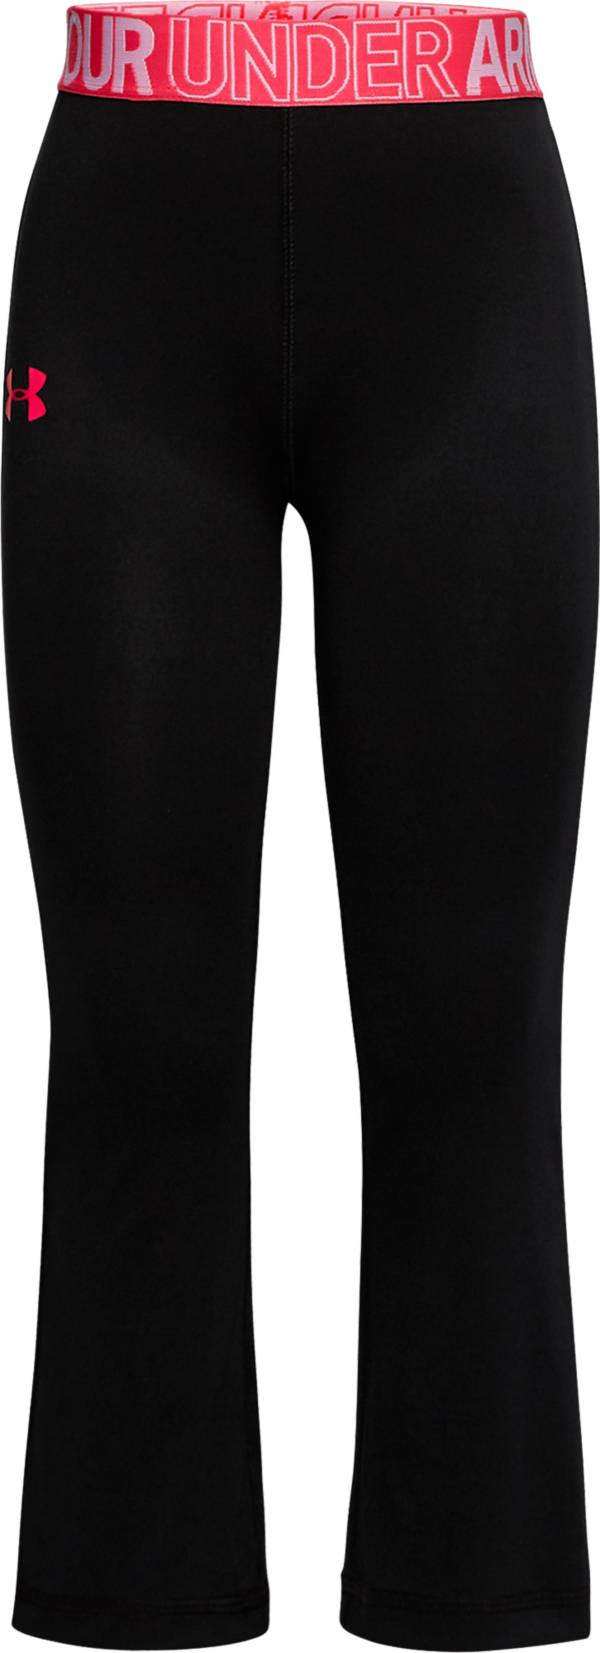 Under Armour Little Girls' Pronto Yoga Pants product image